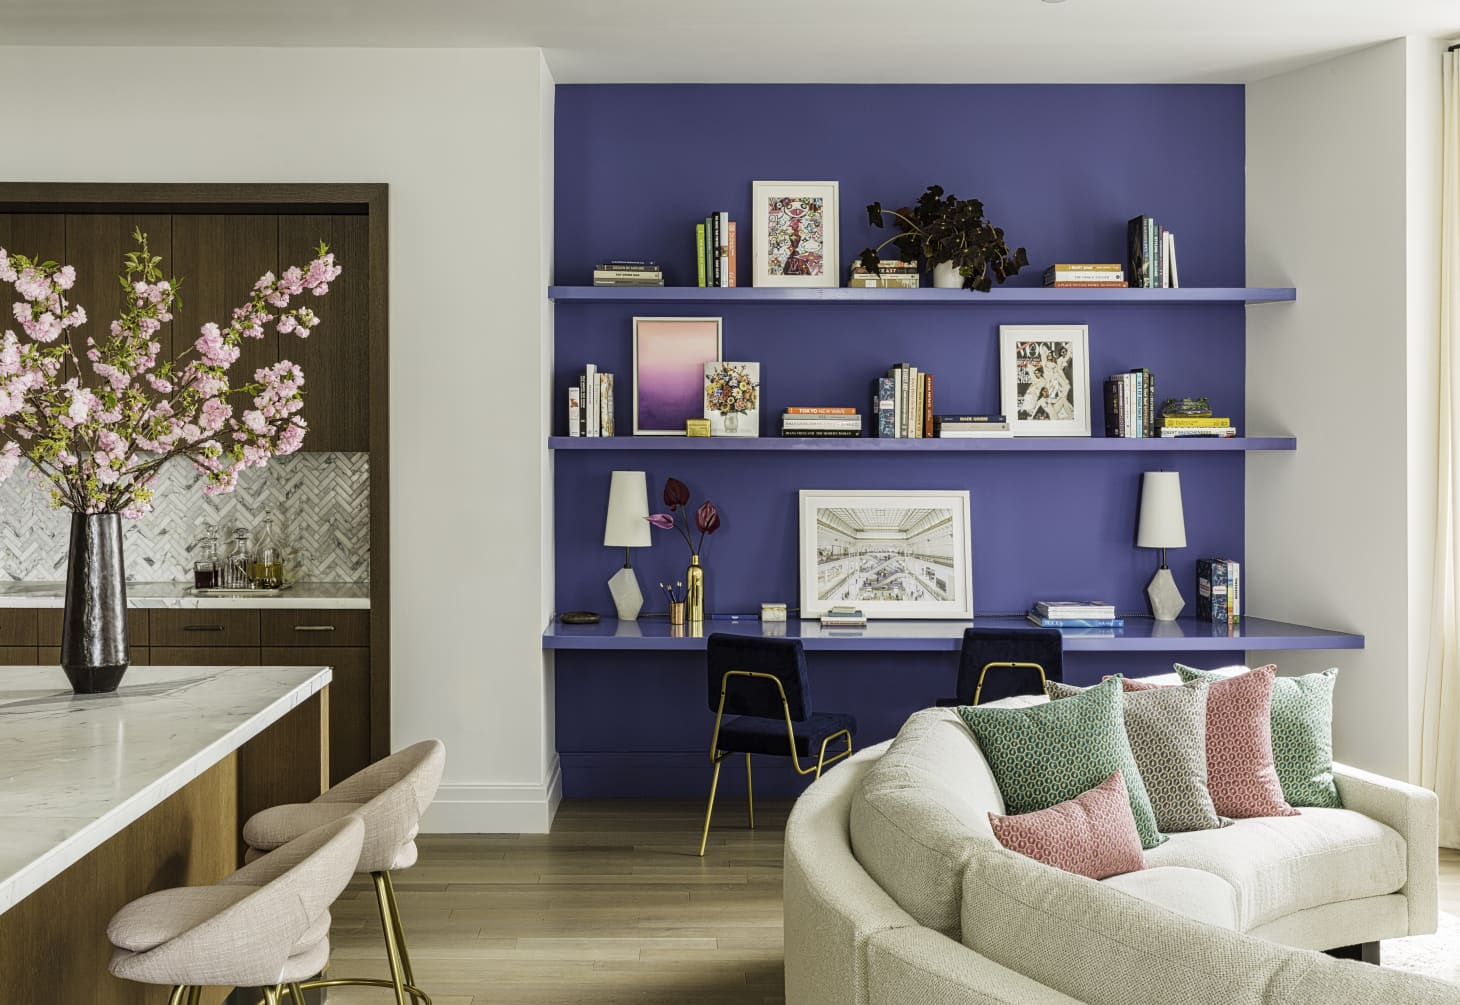 The Best Blue Living Room Wall Colors According To Real Estate